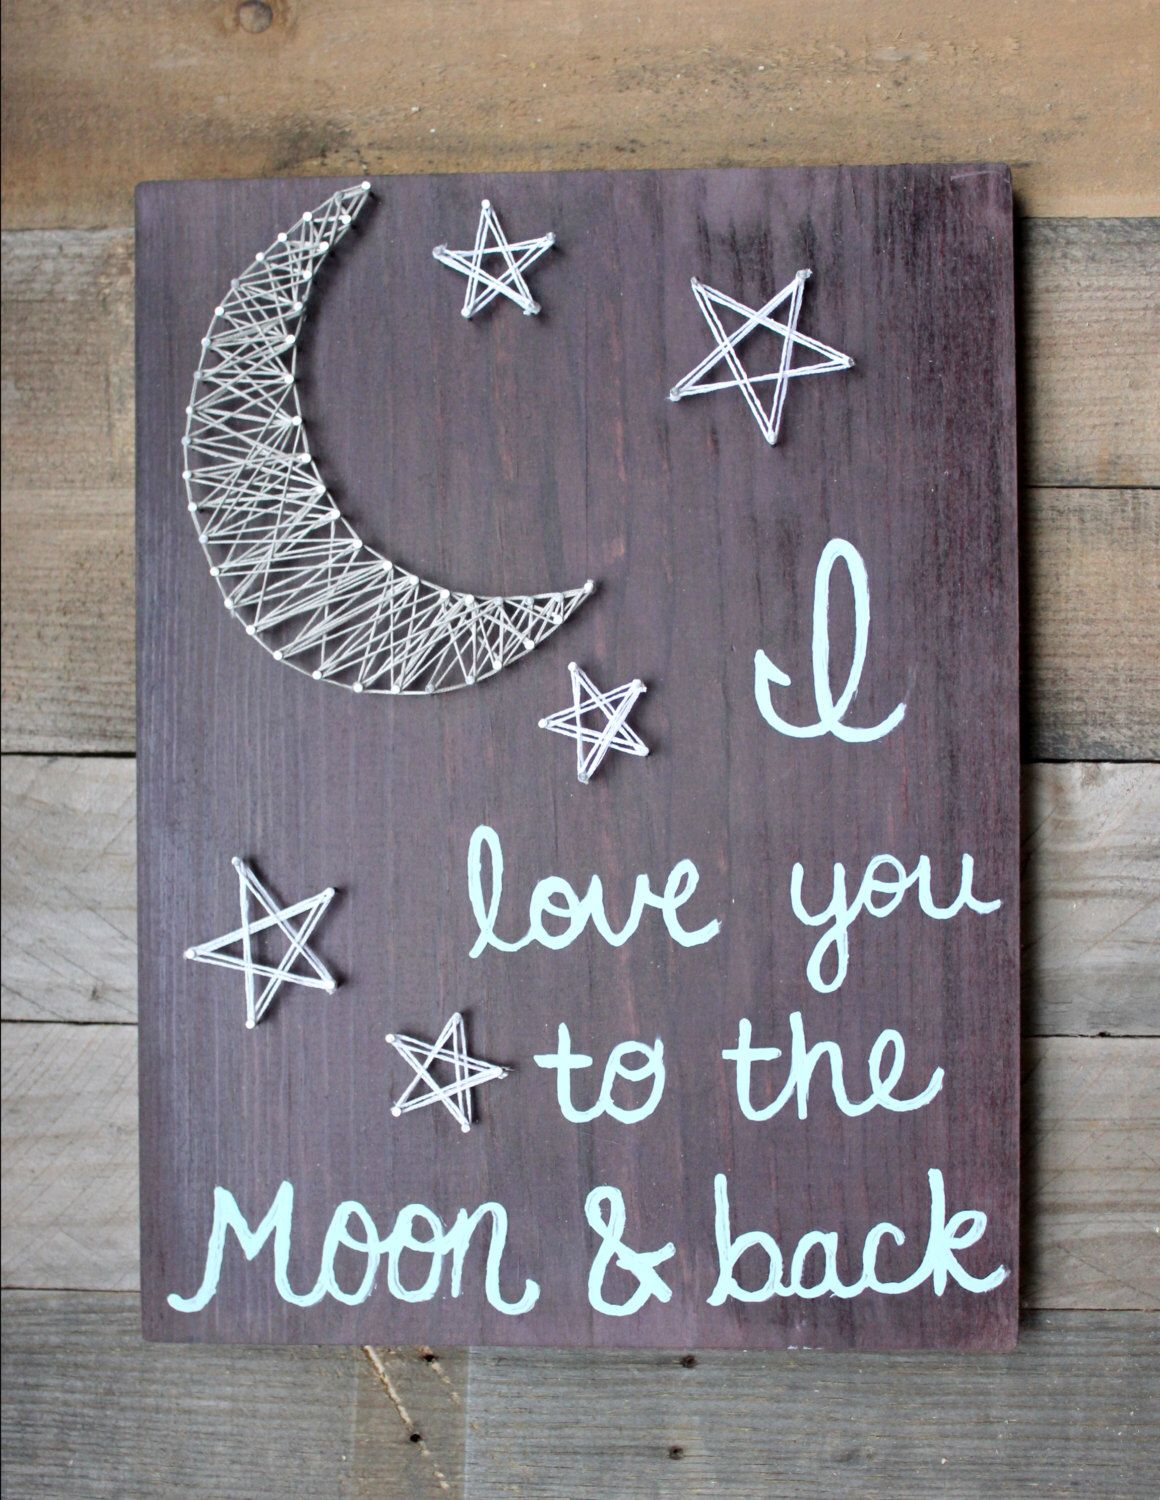 I Love You To The Moon And Back String Art By Naileditcustomcrafts On Etsy Https Www Etsy Com Listing 210778522 I L String Art Diy String Art Nail String Art